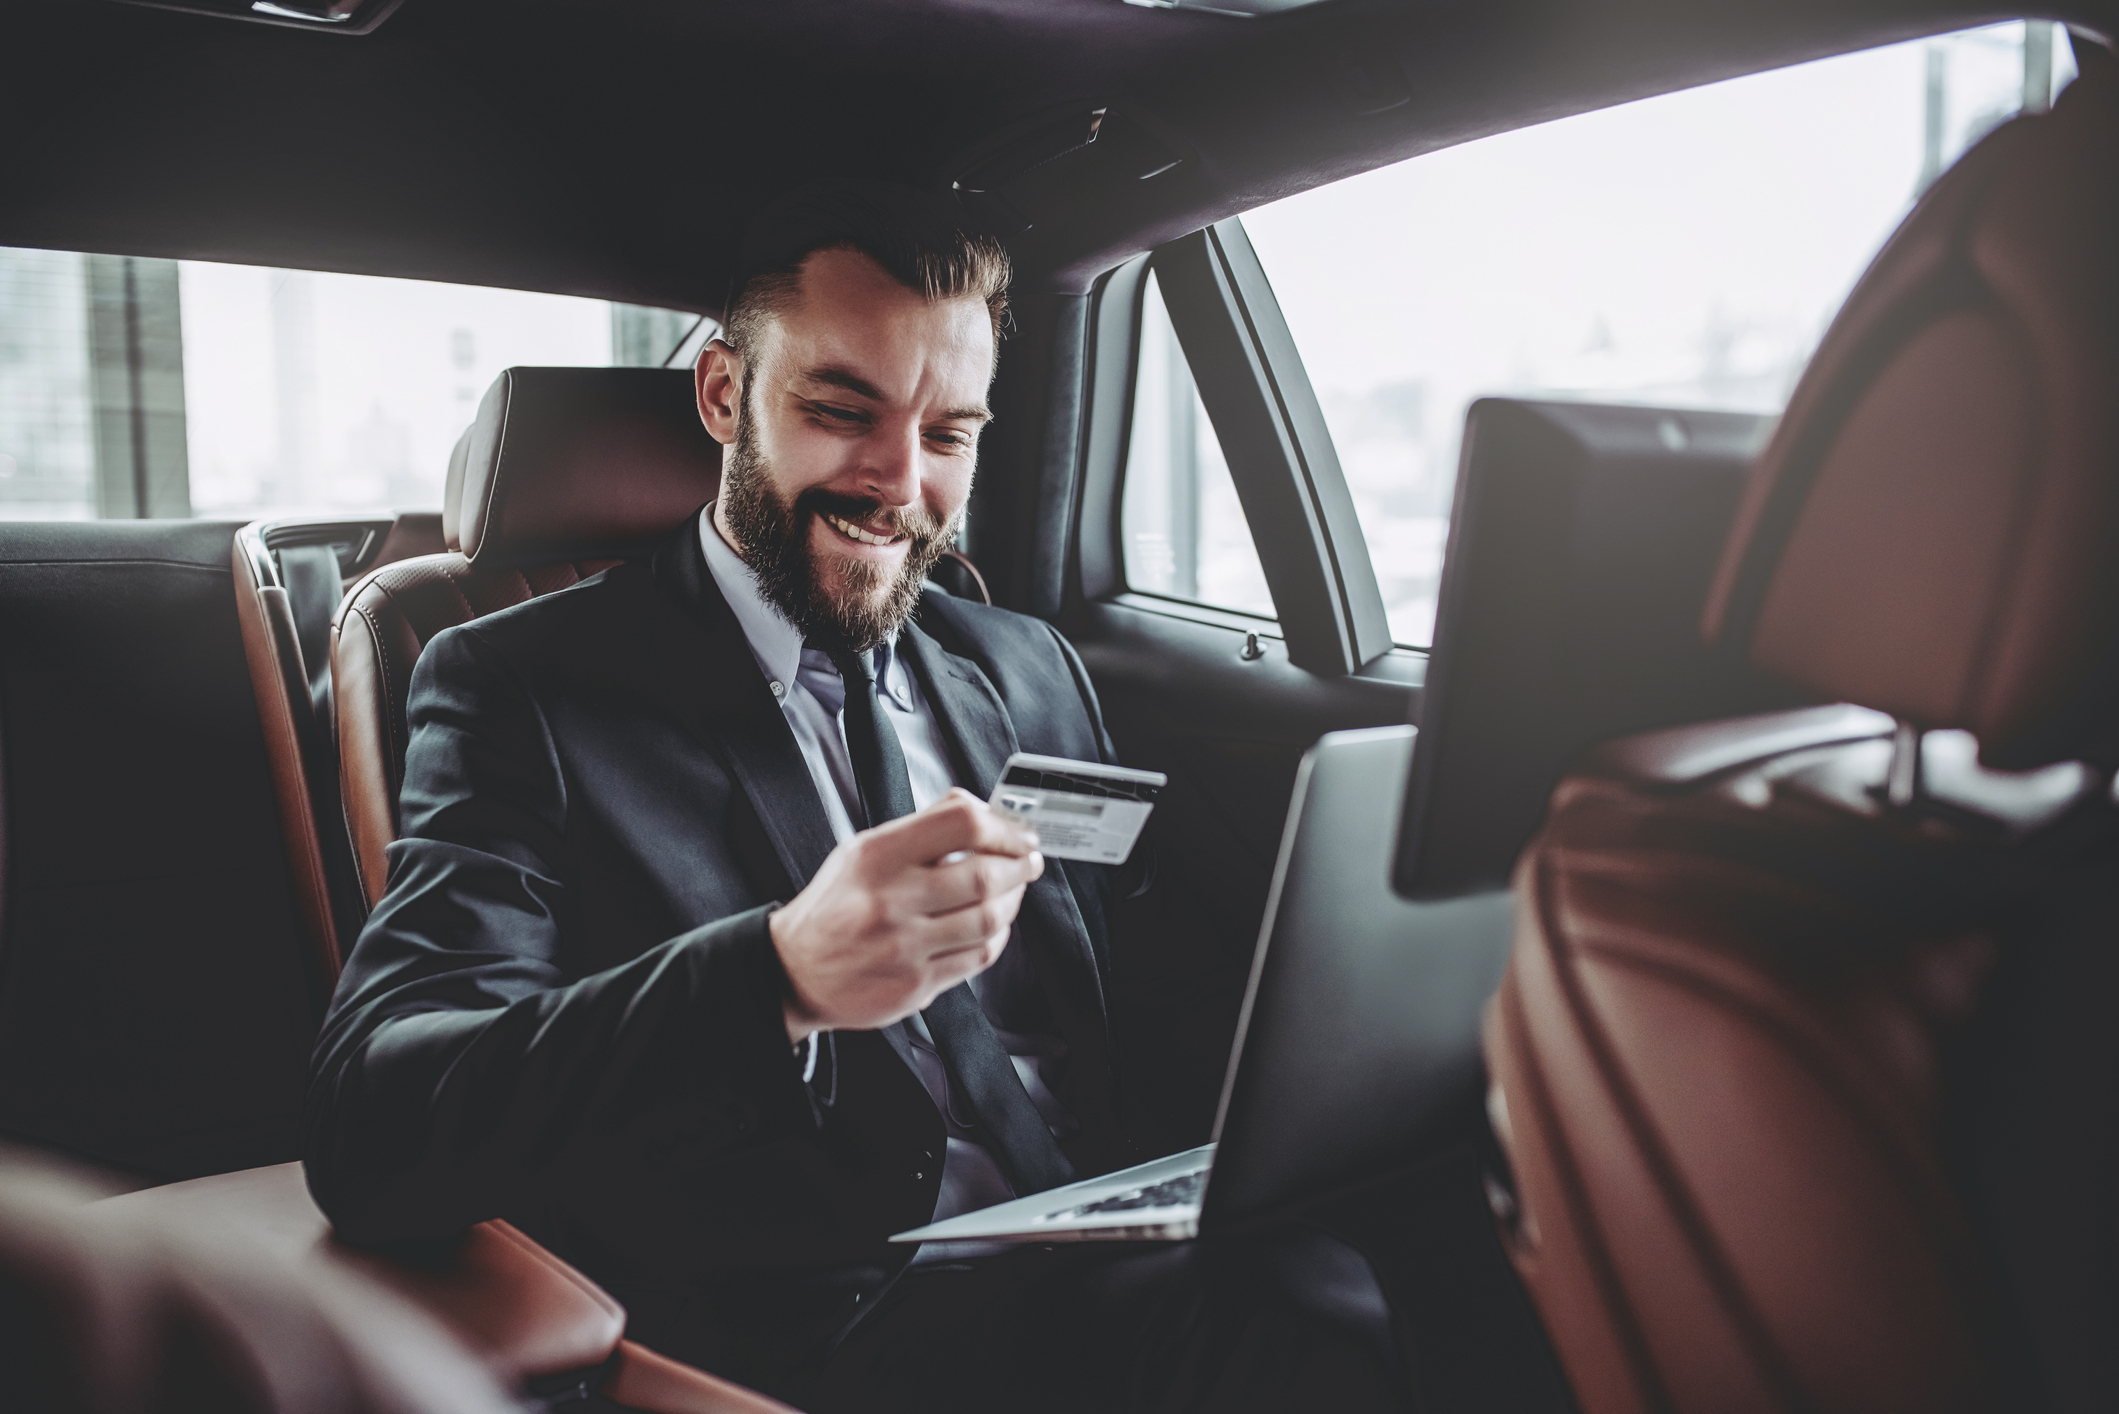 Man in suit in the back of a luxury car with laptop in his lap holding a credit card.